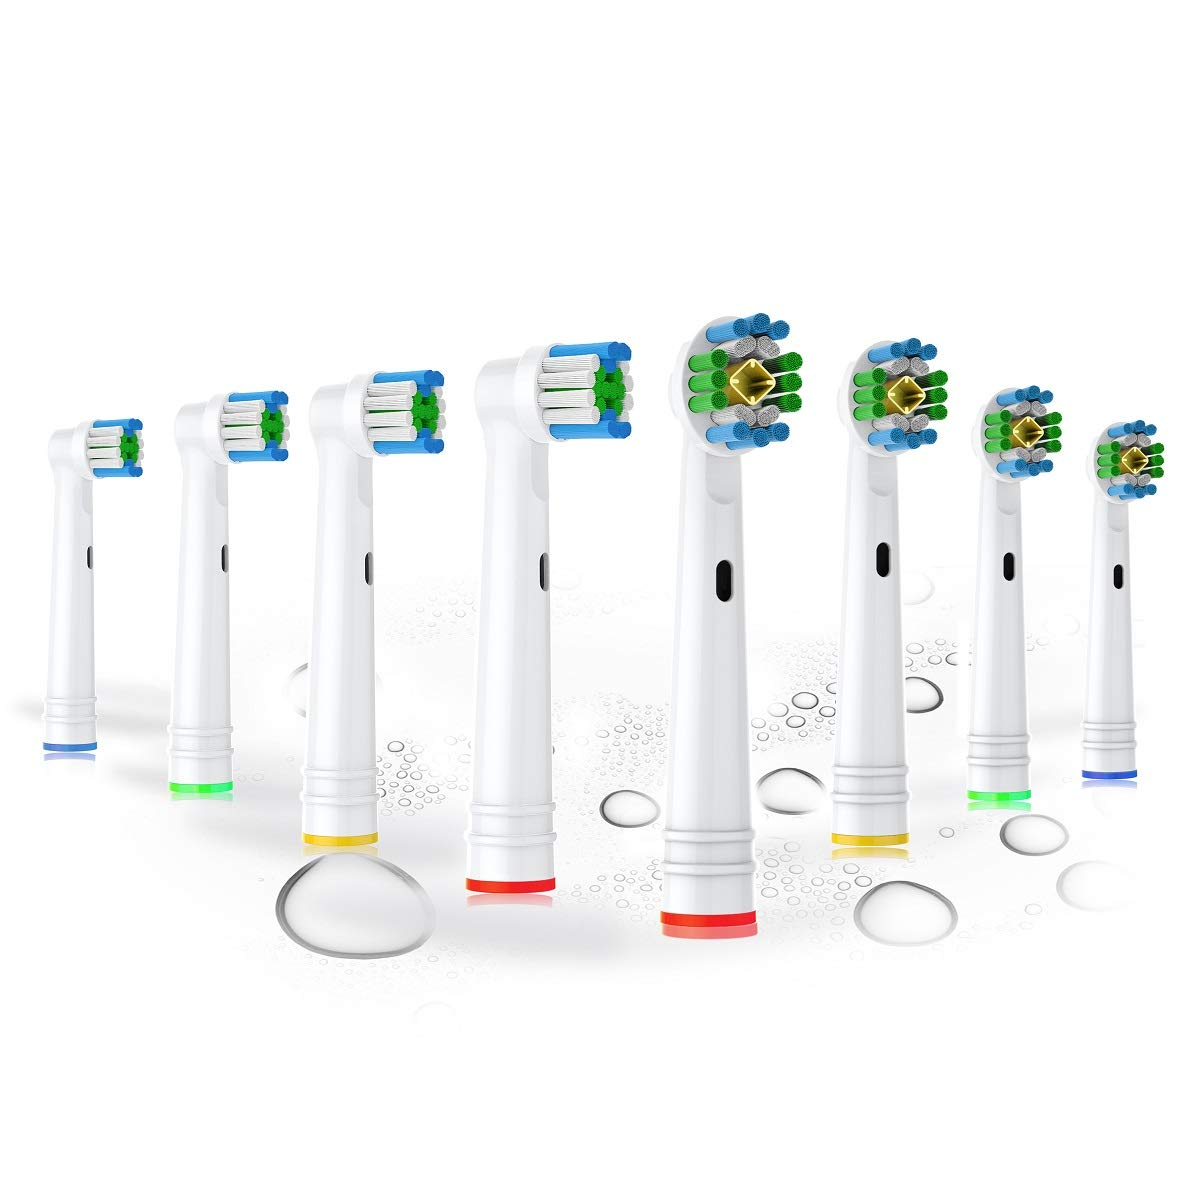 BUKURII Replacement Toothbrush Heads set,includes 4 3D White,4 Daily Care Clean Replacement Brush Heads ,Compatible with Braun Oral-B Electric Toothbrushes-8pcs